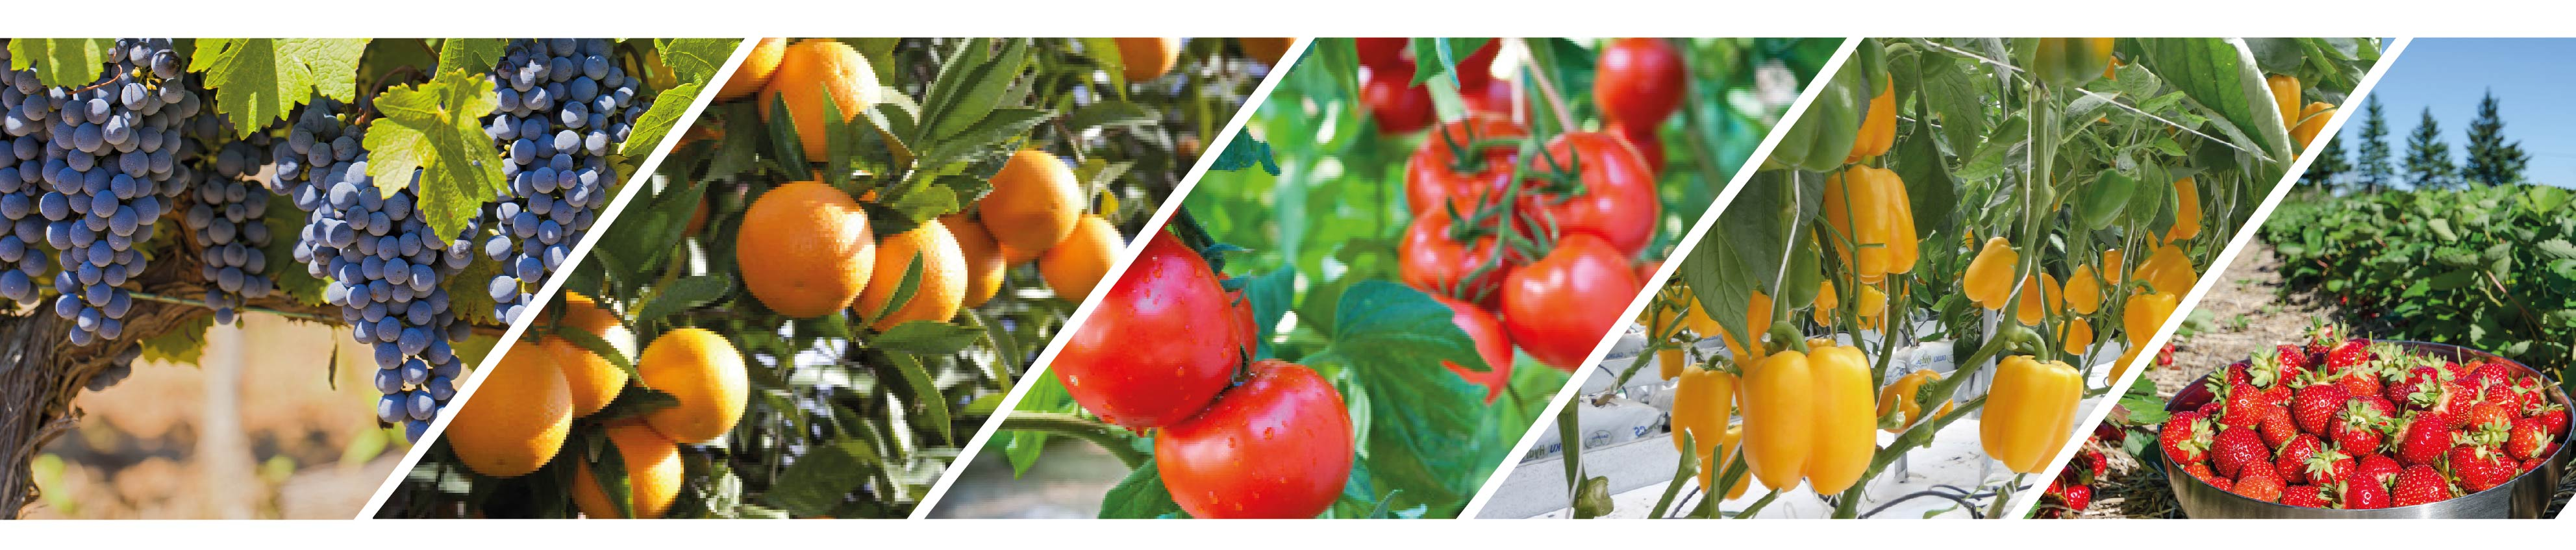 Improve quality of fruit and veg with CalMax